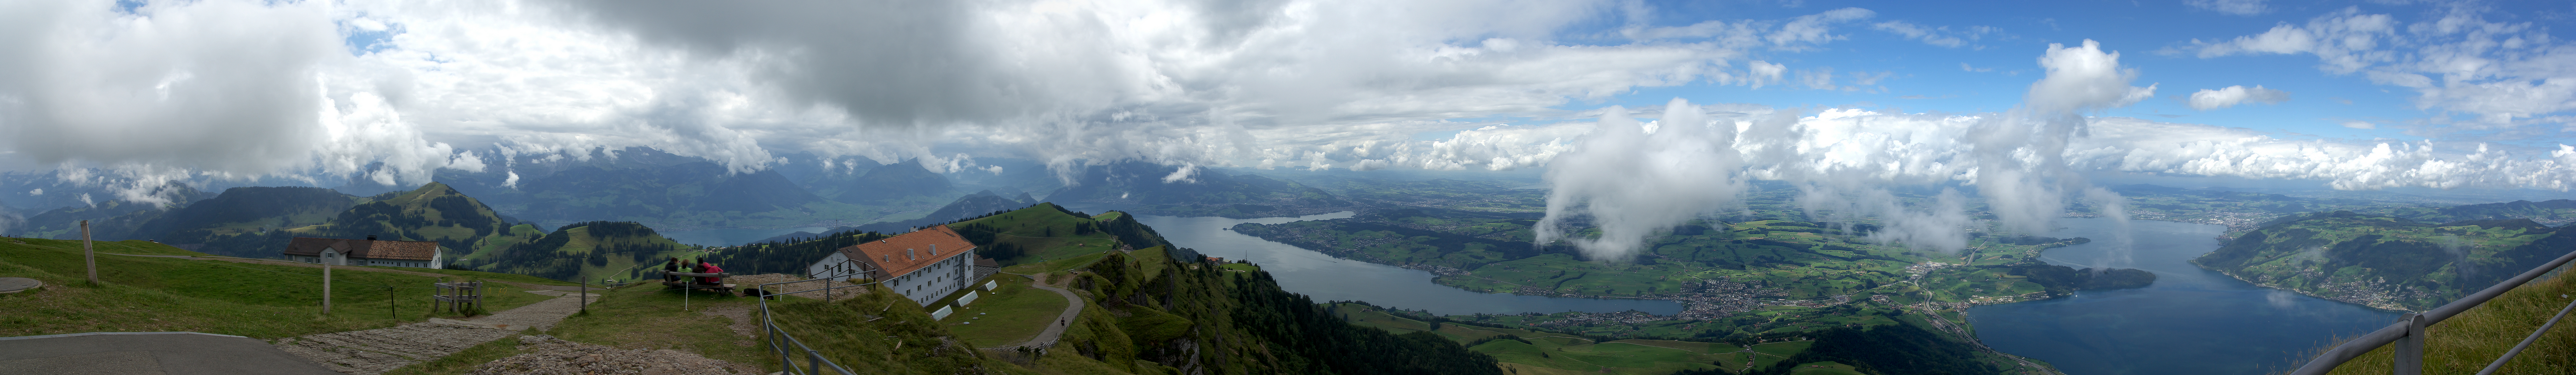 Switzerland - Mt Rigi looking towards Lucern